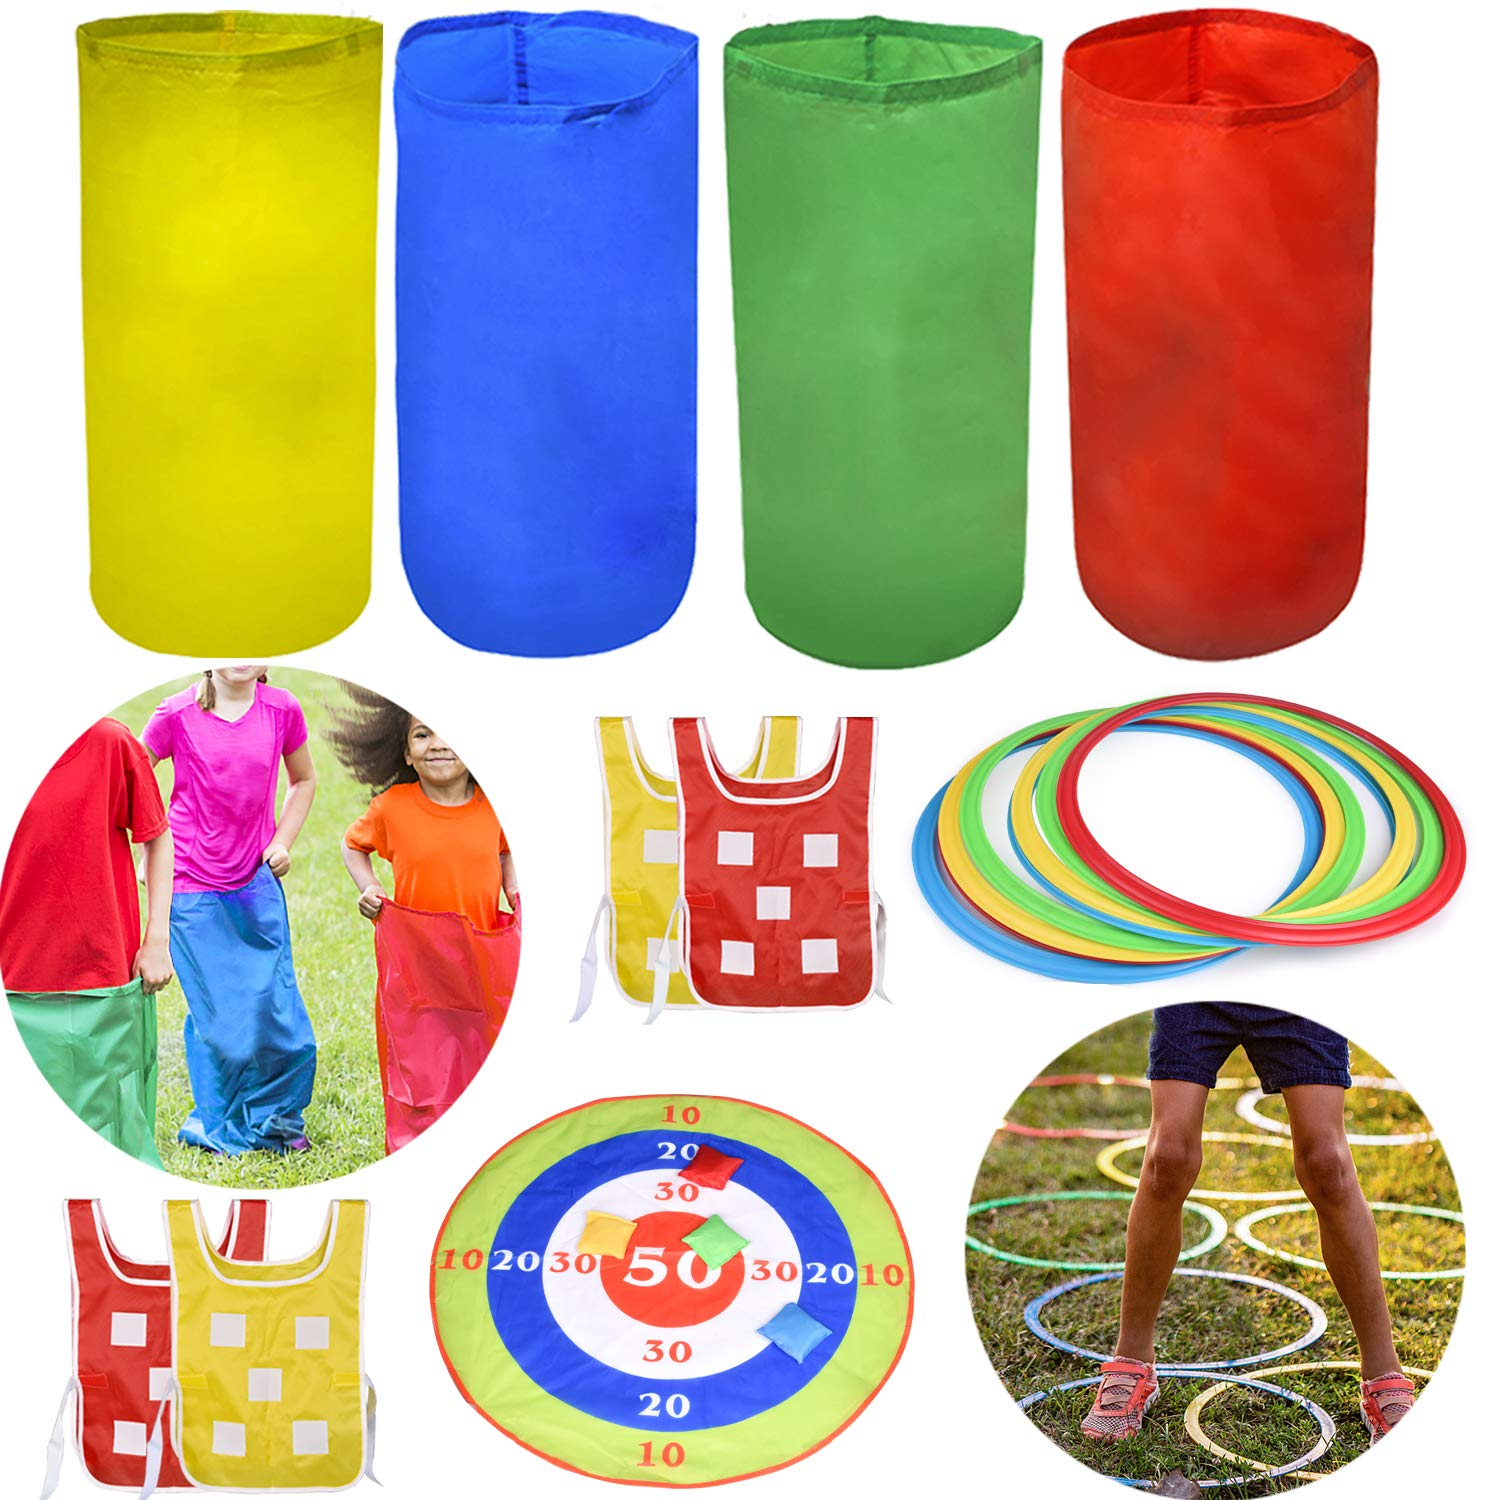 4 Outdoor Lawn Games Includes 4 Potato Sack Race Bags, 8 Hopscotch Rings, Toss Game Set with 4 Bean Bags and 4 Chasing Race Game Vests, Kids Outdoor Toys Birthday Party Games by FUN LITTLE TOYS